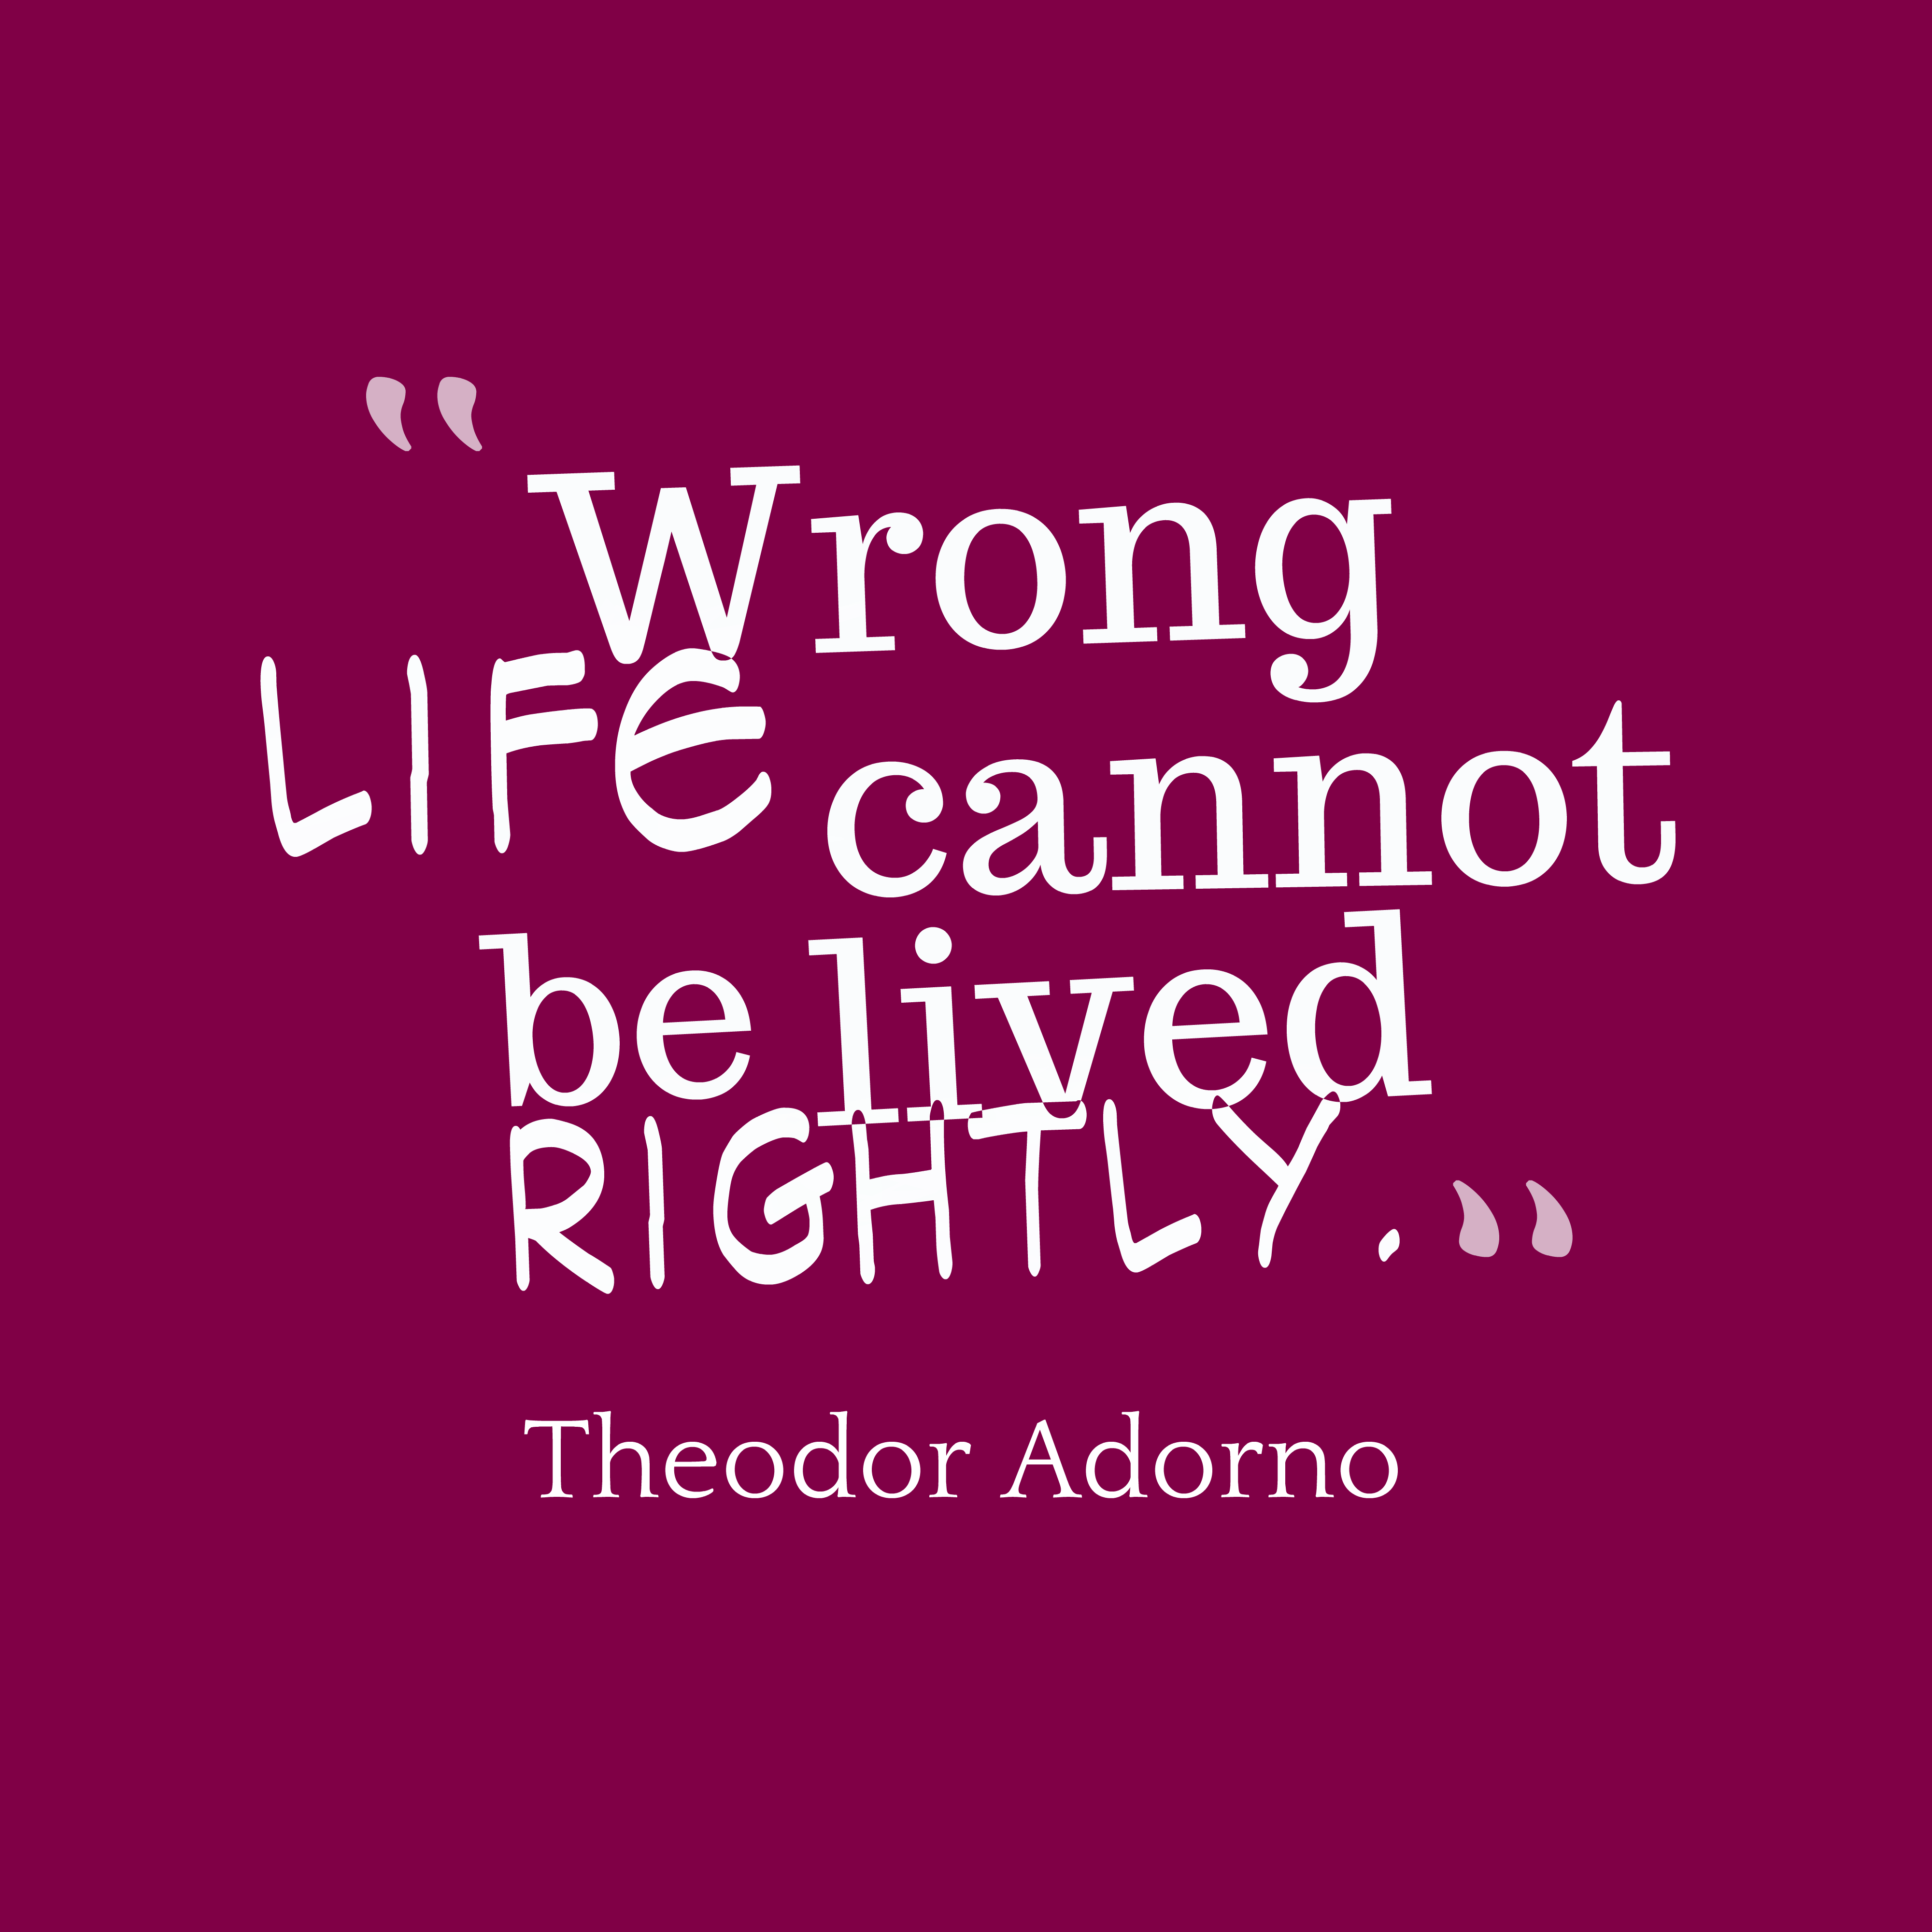 Download Picture Quotes About Life: Download High Resolution Quotes Picture Maker From Theodor